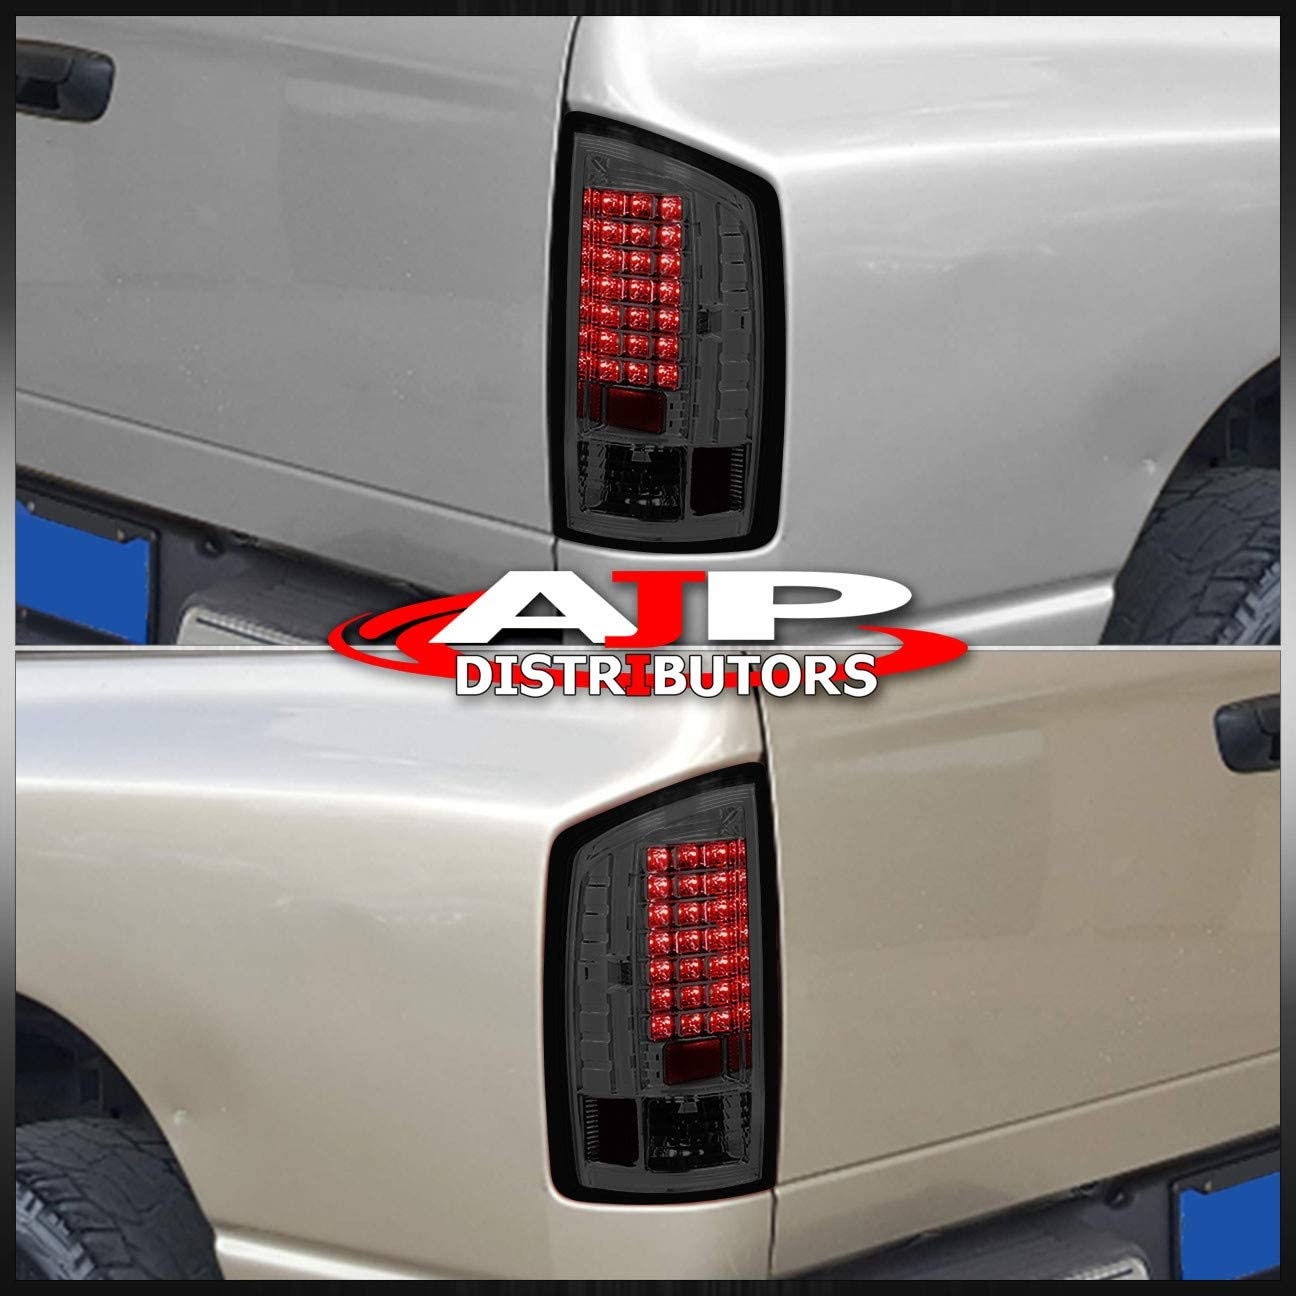 AJP Distributors For Dodge Ram 1500 2500 3500 Rear LED Replacement Upgrade Driving Brake Stop Tail Lights Lamps Light Lamp Assembly Unit Left Right 2003 2004 2005 2006 03 04 05 06